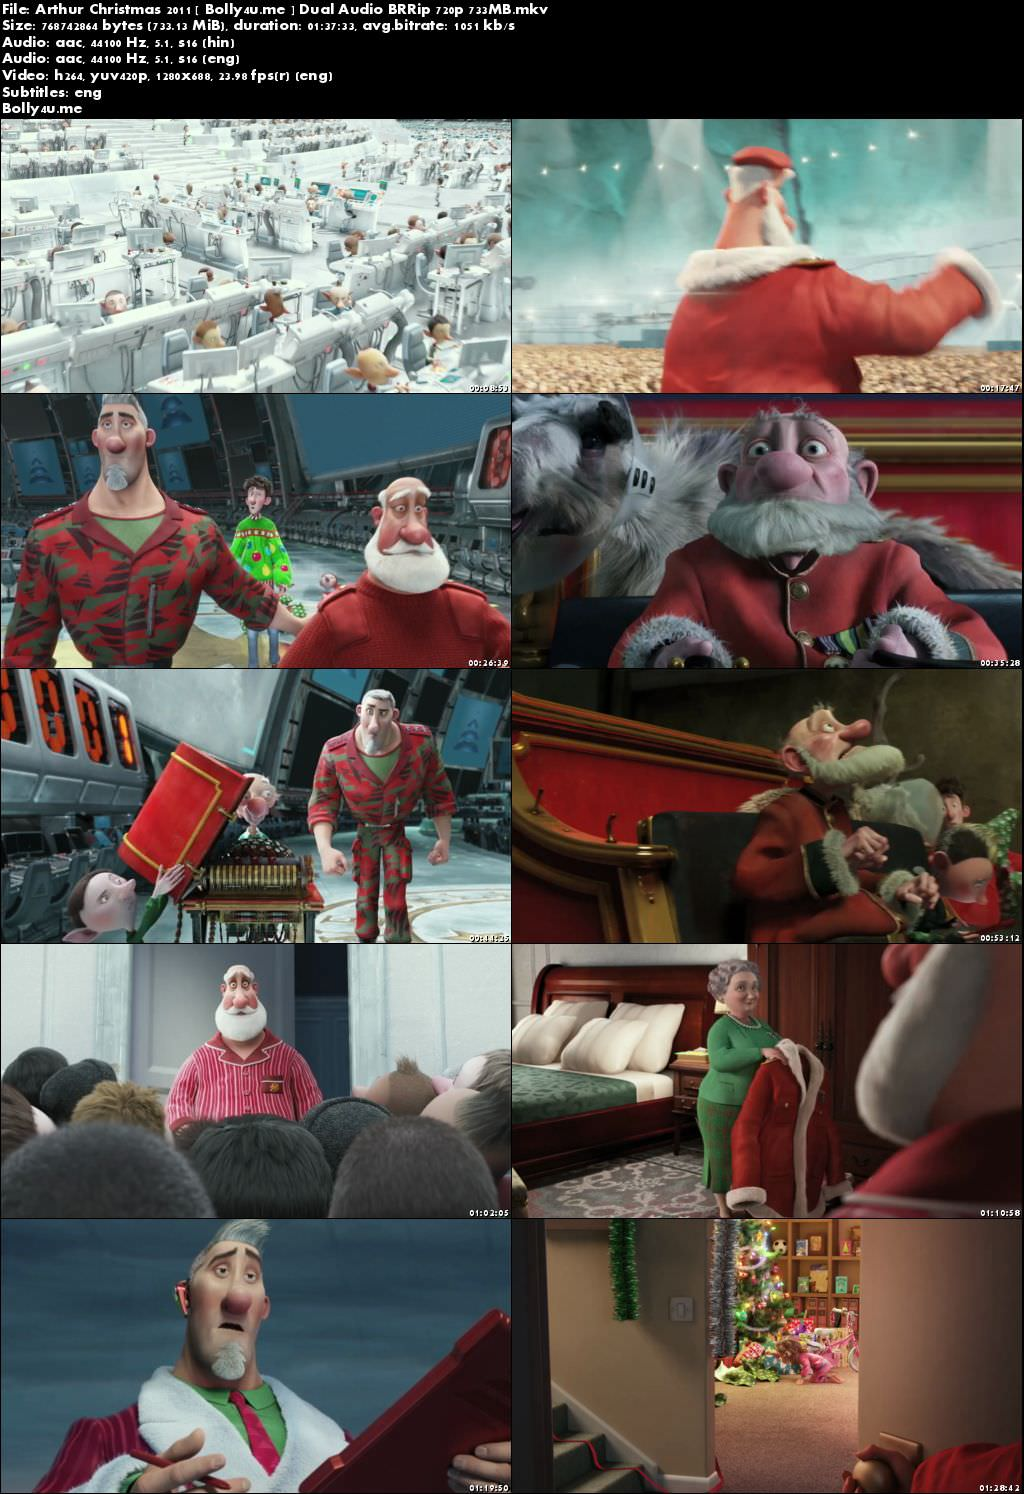 Arthur Christmas 2011 BRRip 700MB Hindi Dual Audio 720p ESub Download